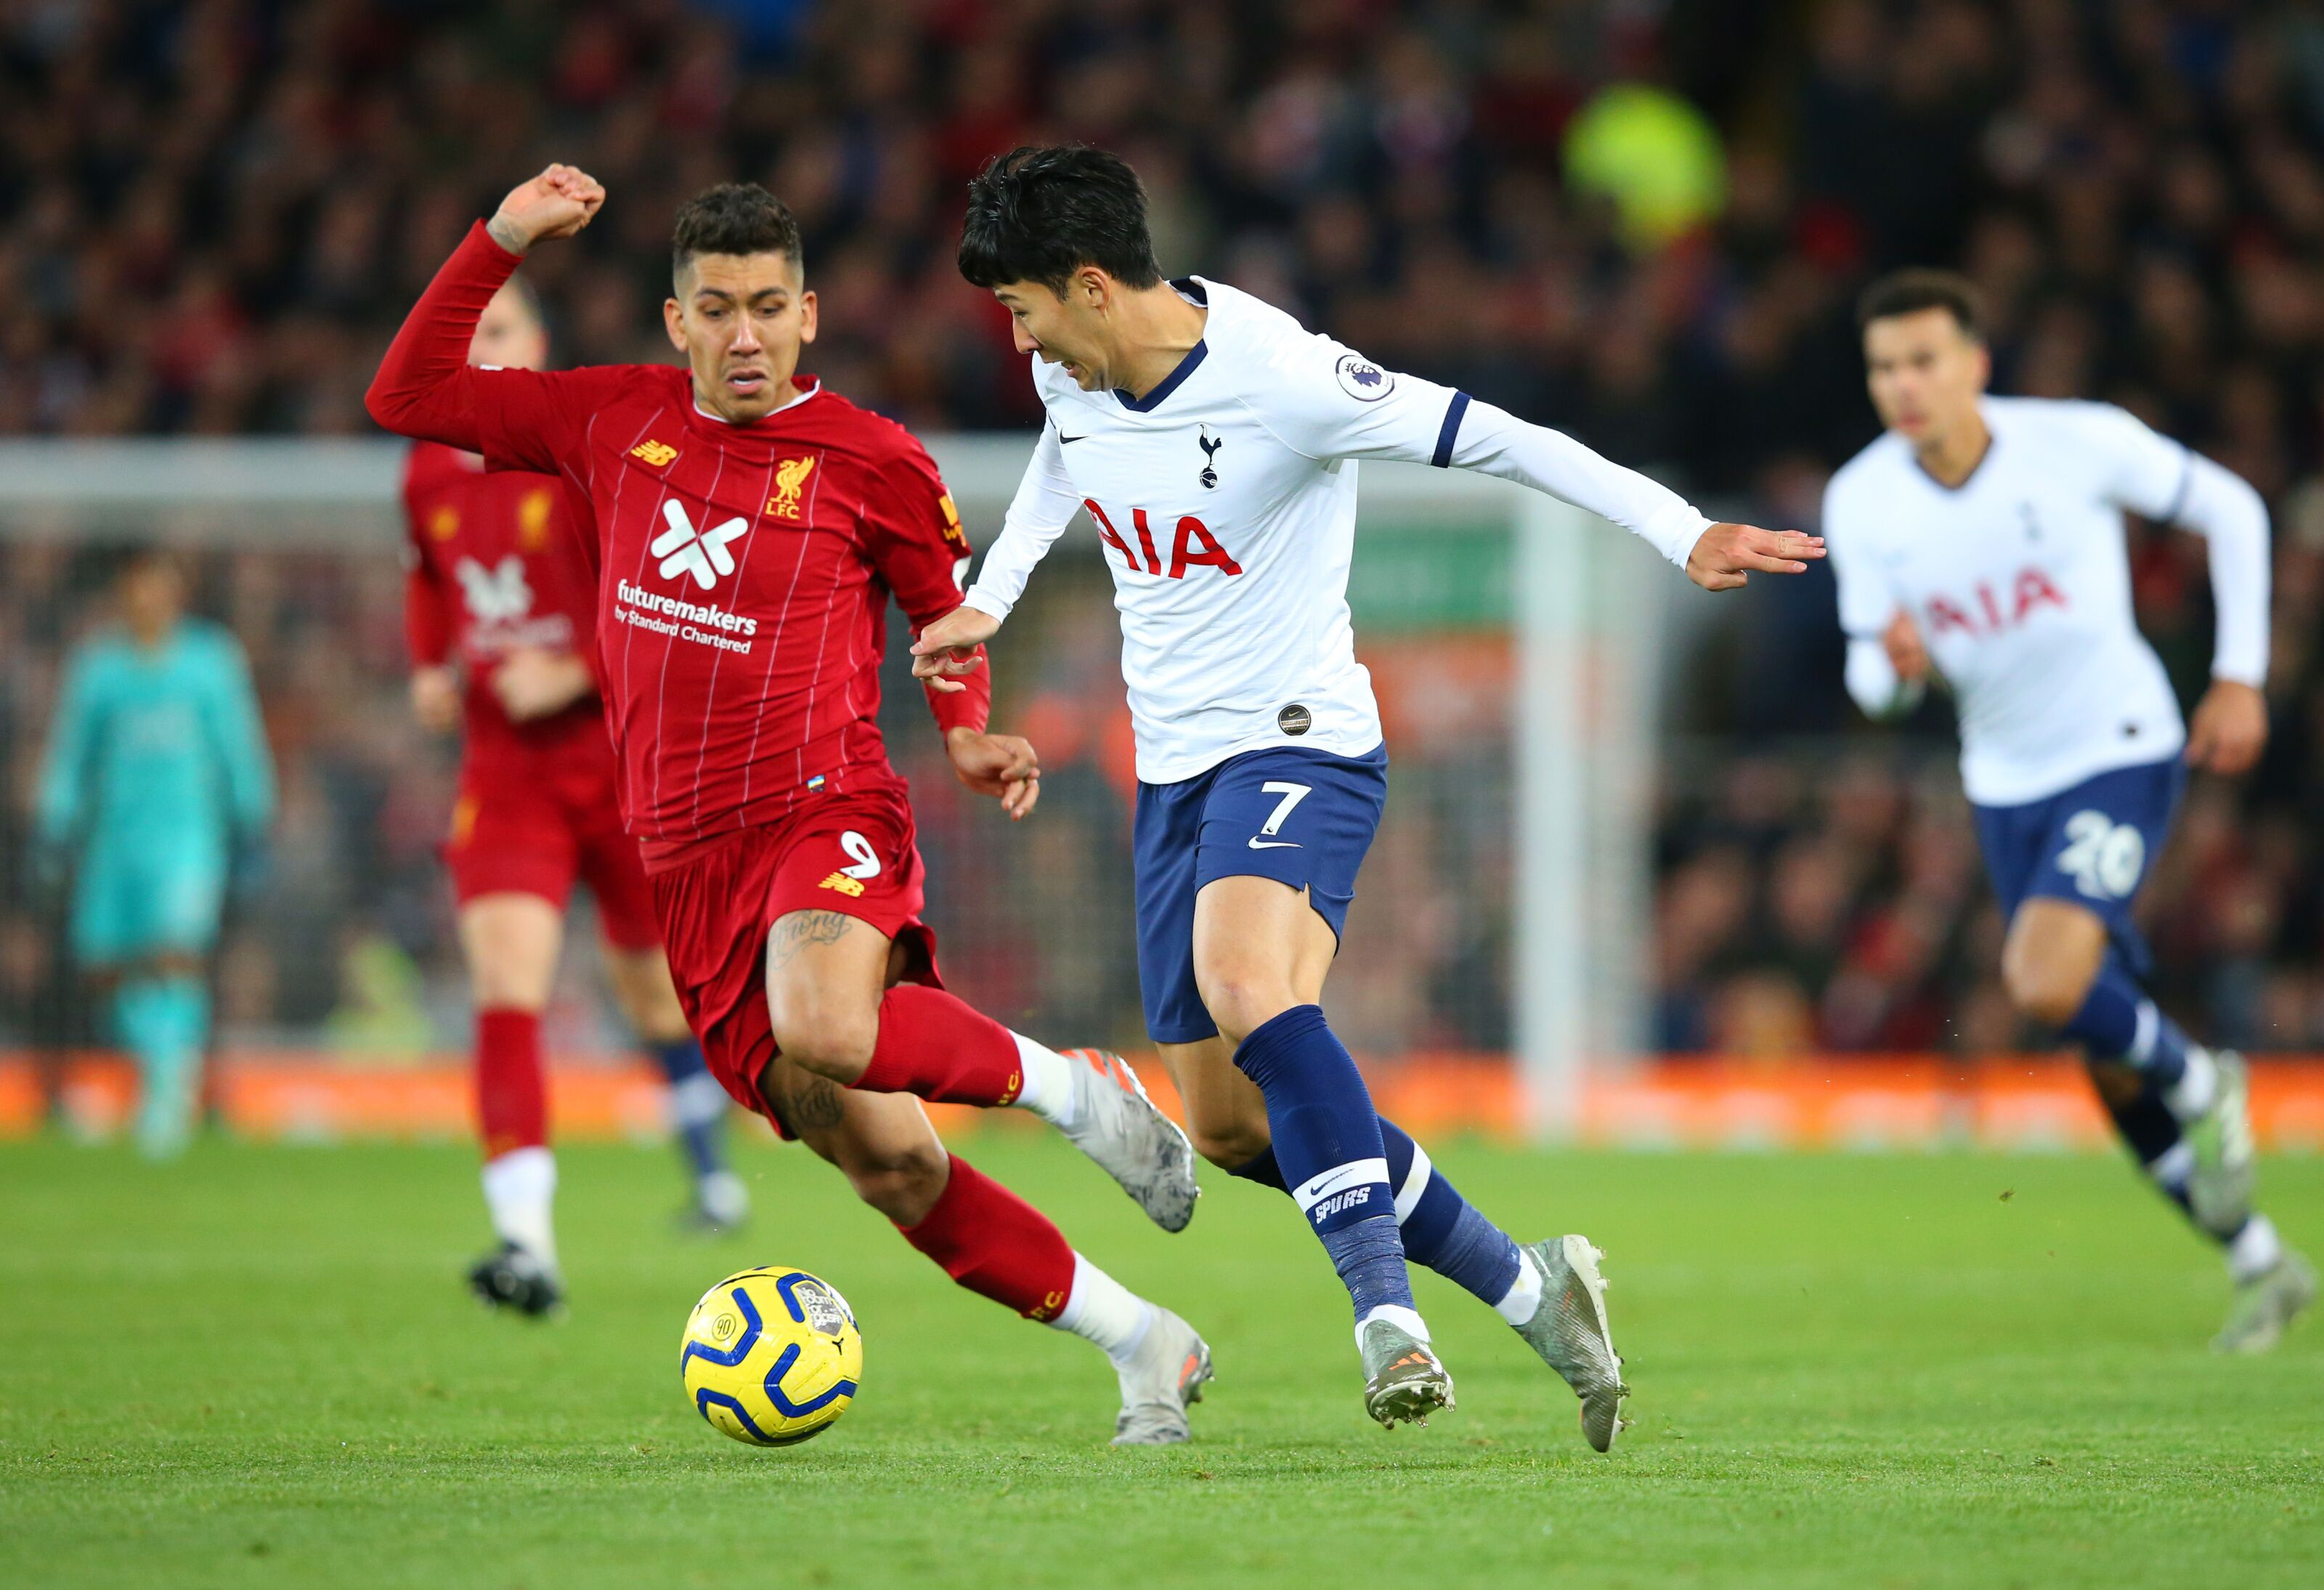 Liverpool linked to Son Heung-Min transfer after Spurs appoint Jose Mourinho